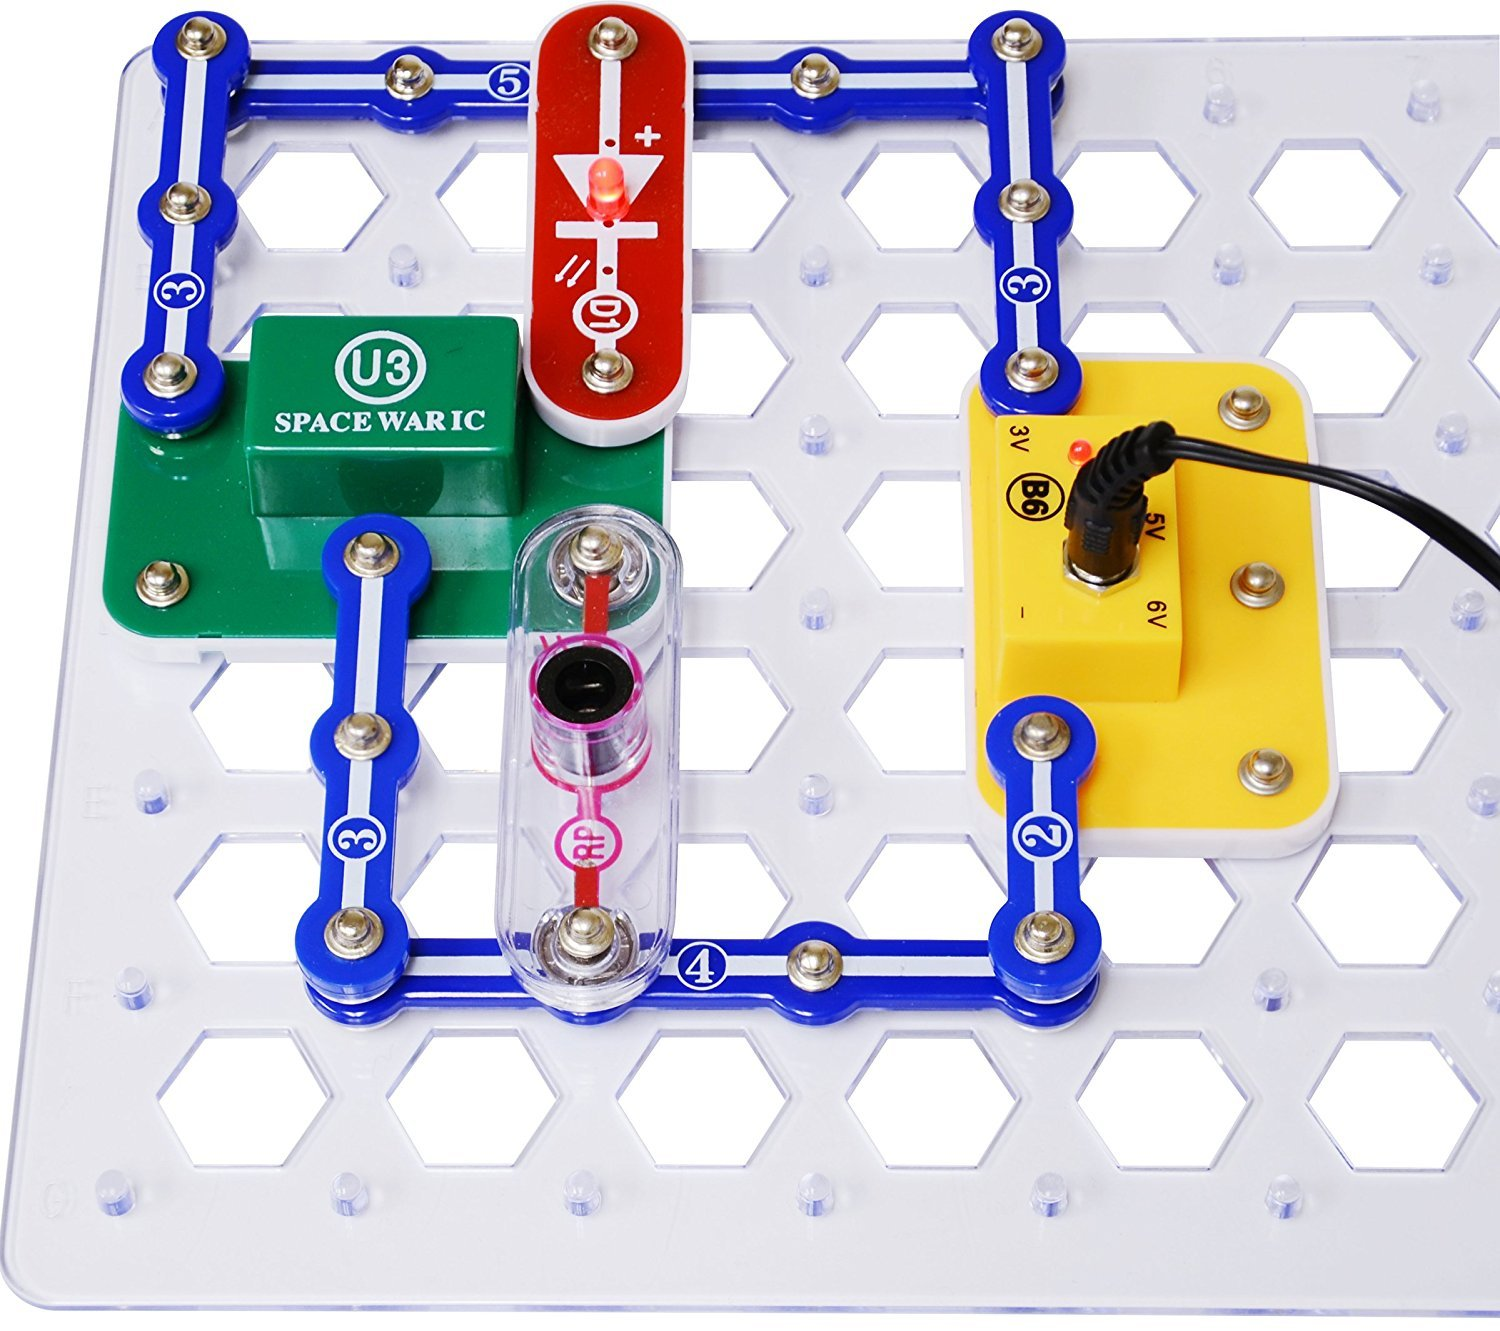 Snap Circuits Elenco Arcade Deluxe Electrical Replacement Motor Top For Engineering Kit With Battery Eliminator Toys Games